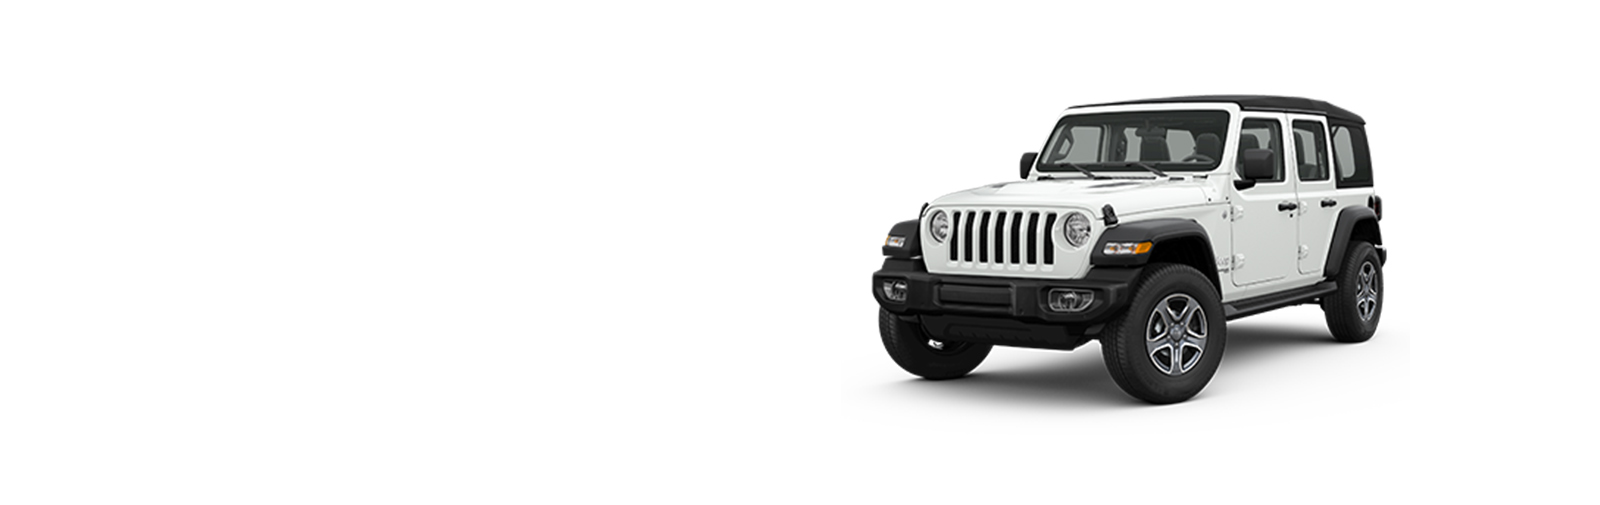 ALL-NEW JEEP? WRANGLER - PCP 0%